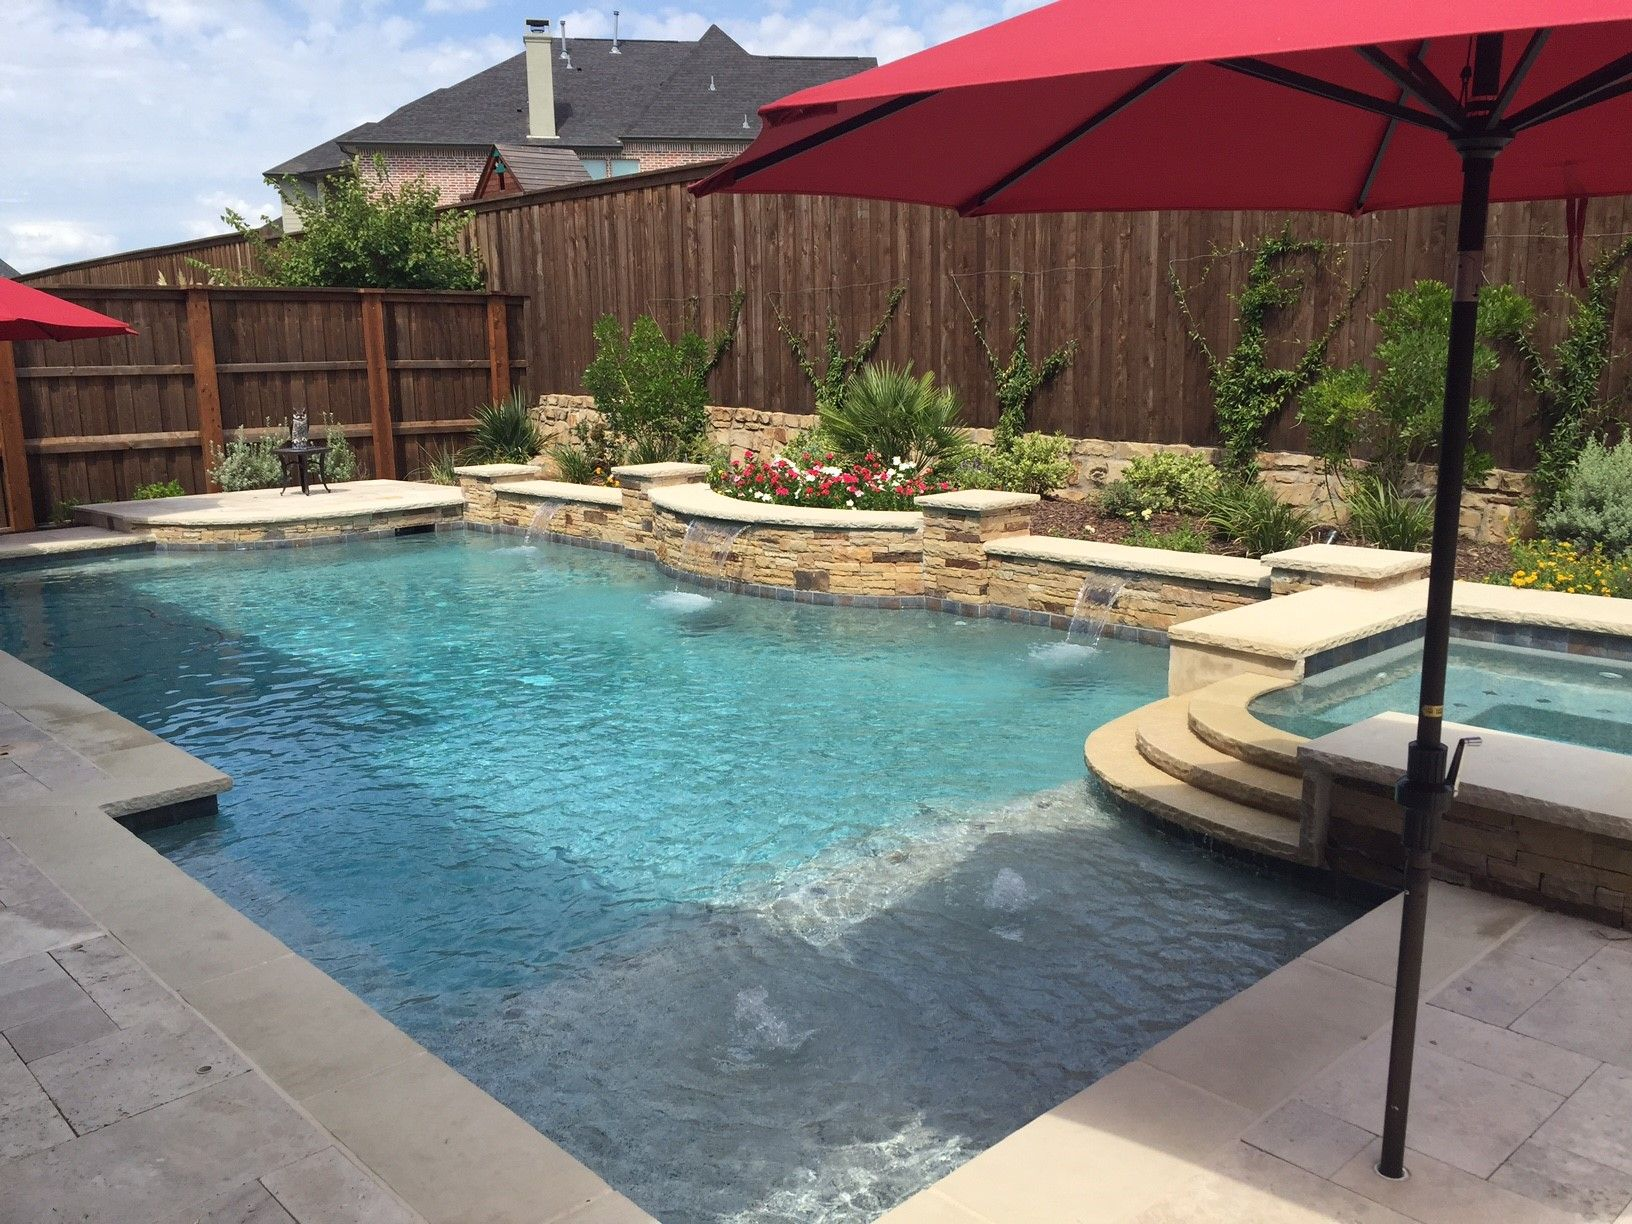 Backyard Pool Designs | Pool Cabana Ideas | Inground Swimming Pool Designs